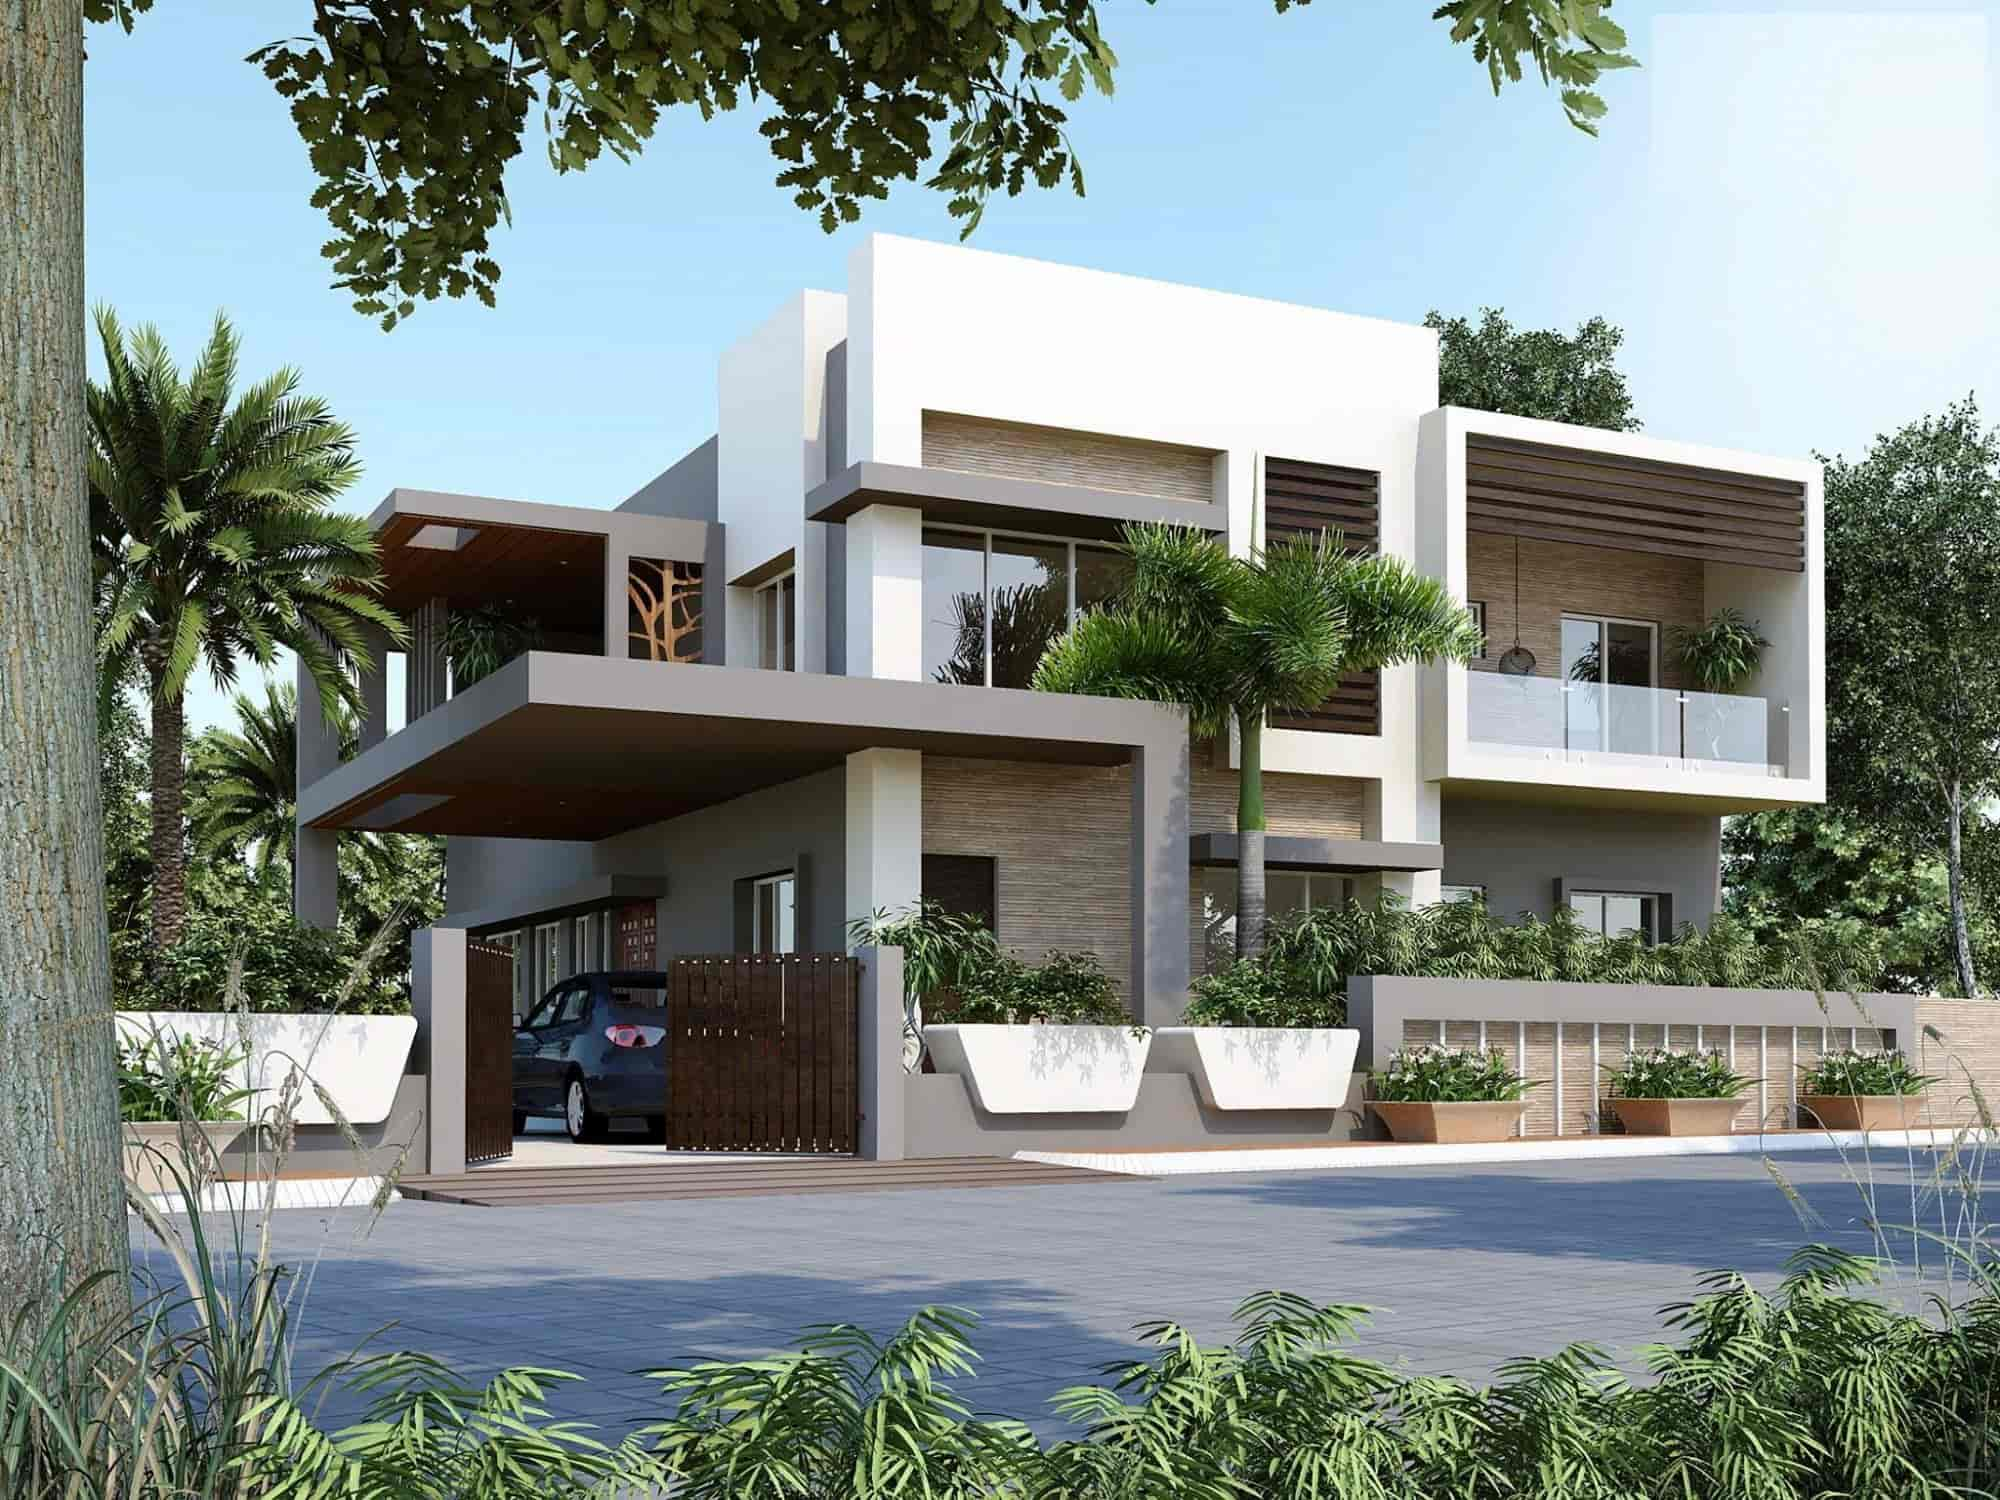 smart home design photos sirohi pictures images gallery justdial - Ge Home Design